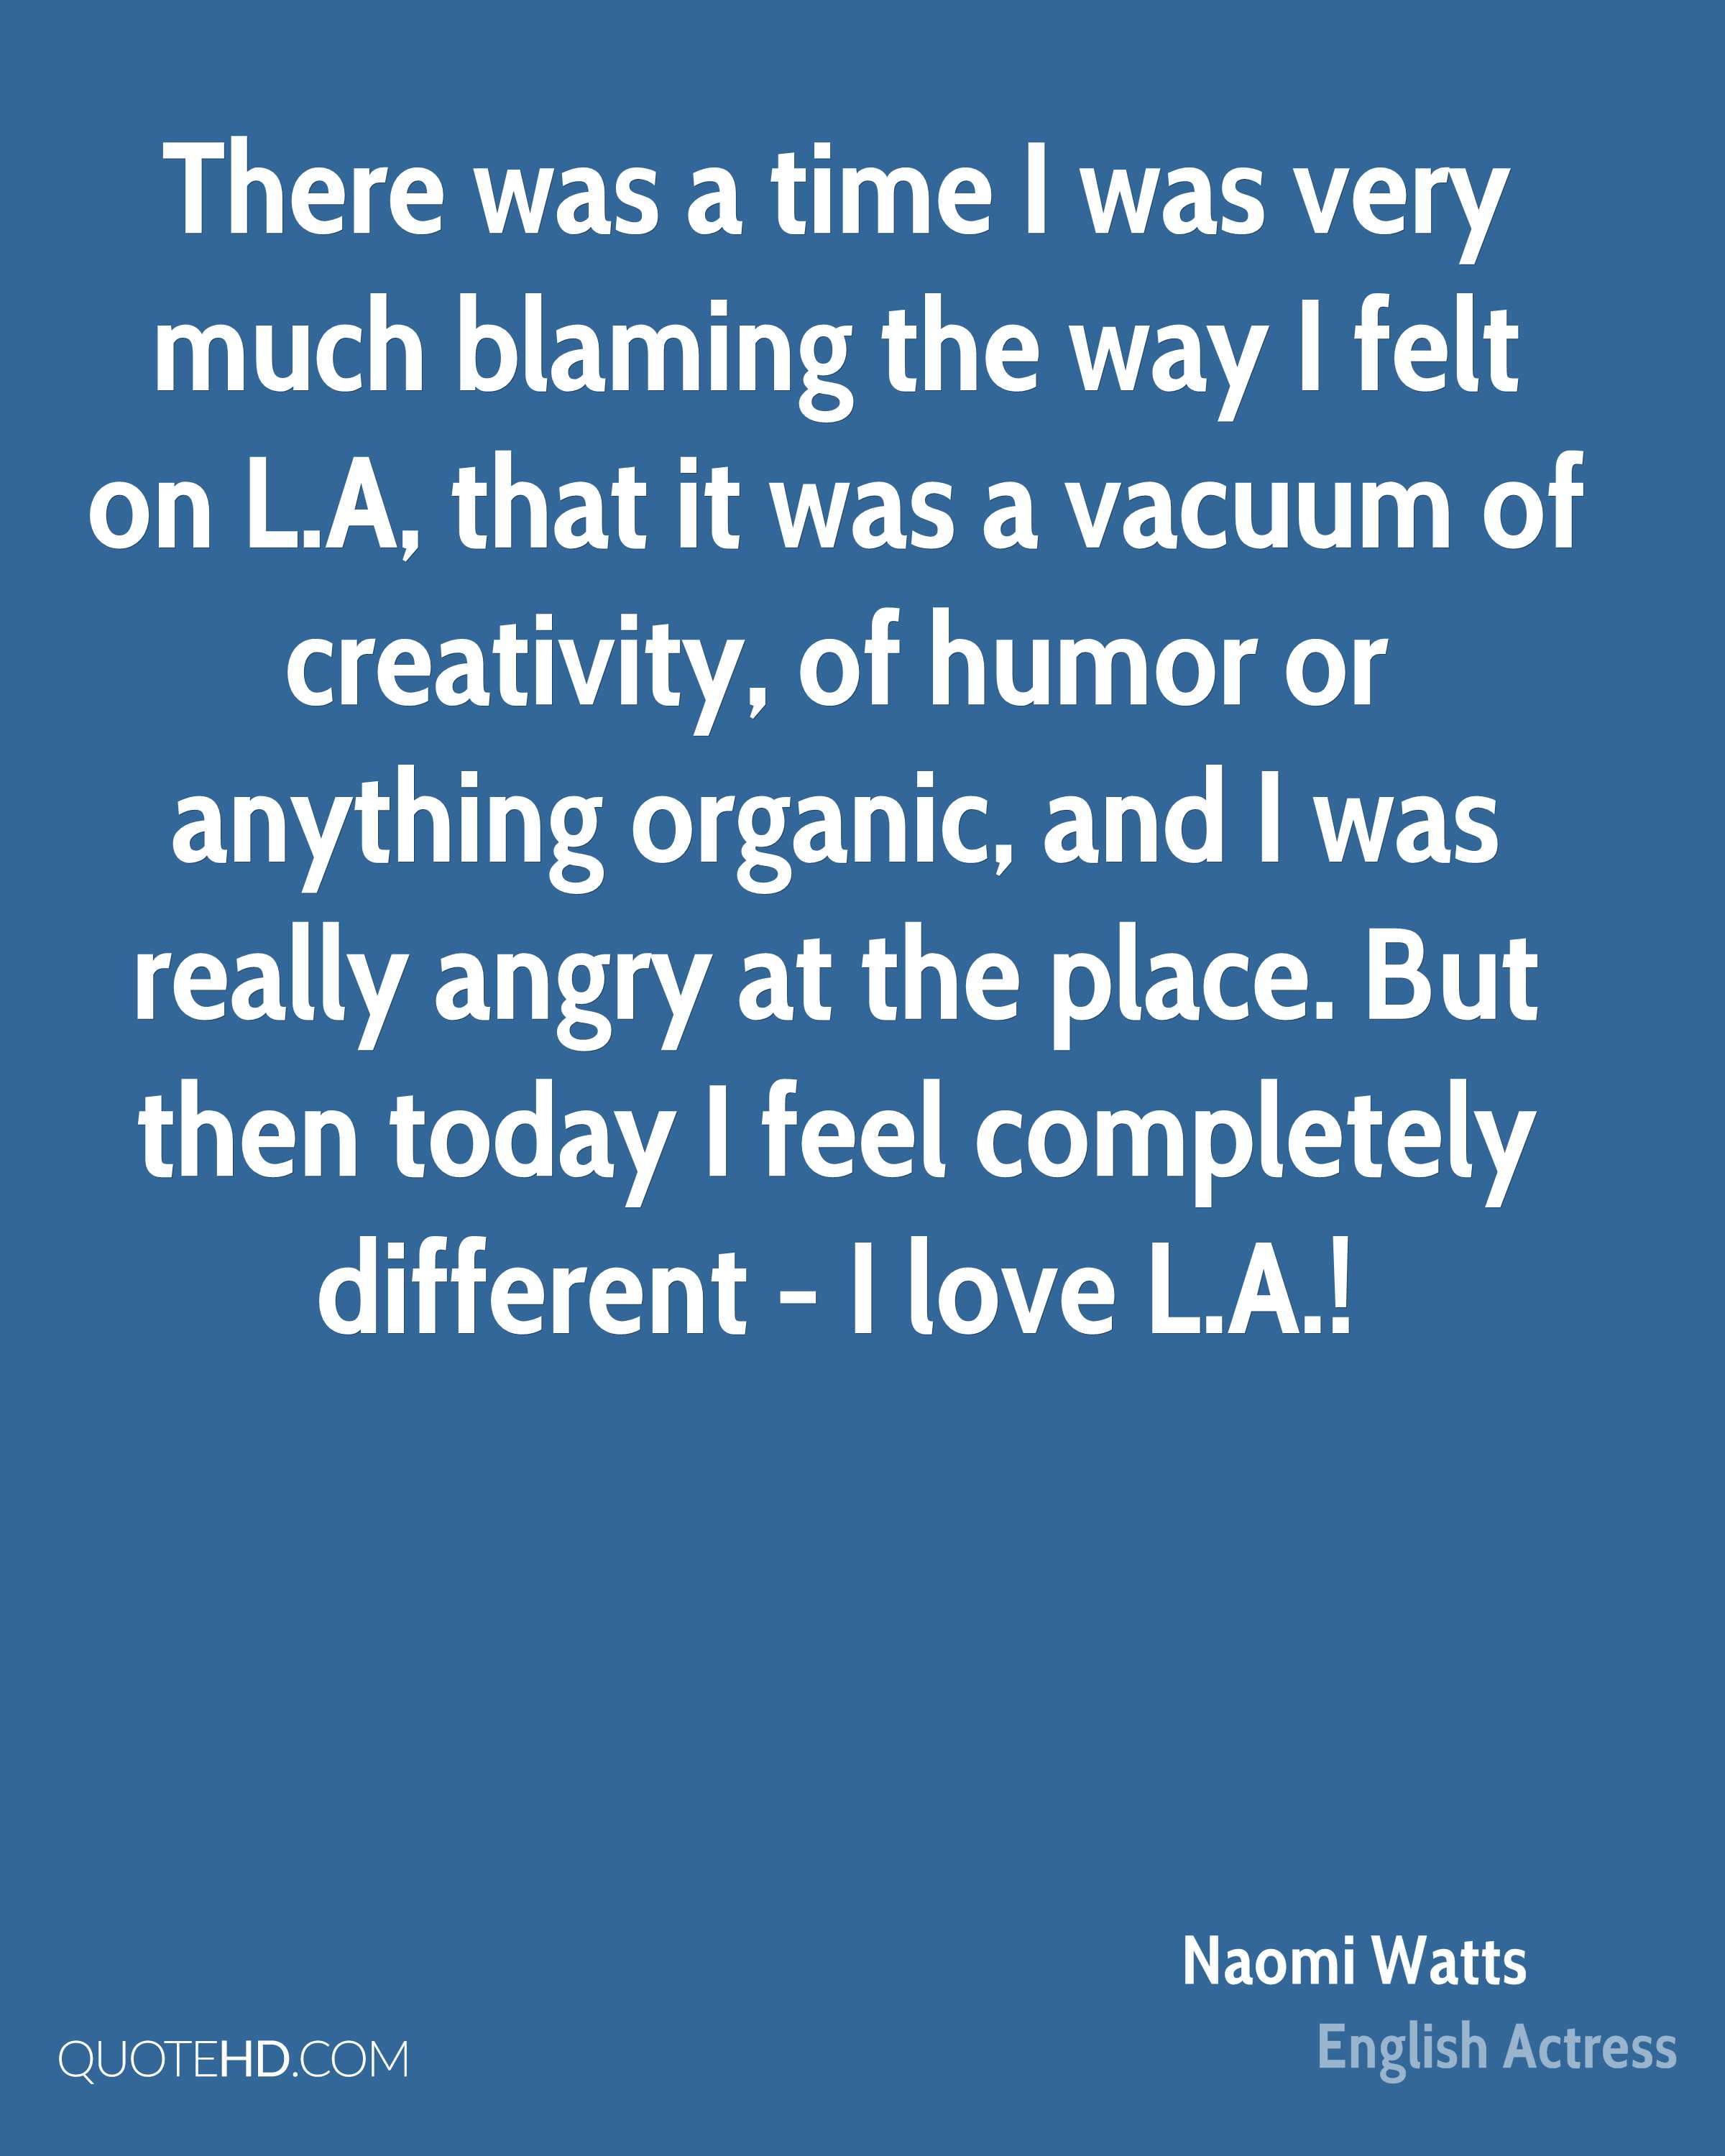 There was a time I was very much blaming the way I felt on L.A, that it was a vacuum of creativity, of humor or anything organic, and I was really angry at the place. But then today I feel completely different - I love L.A.!